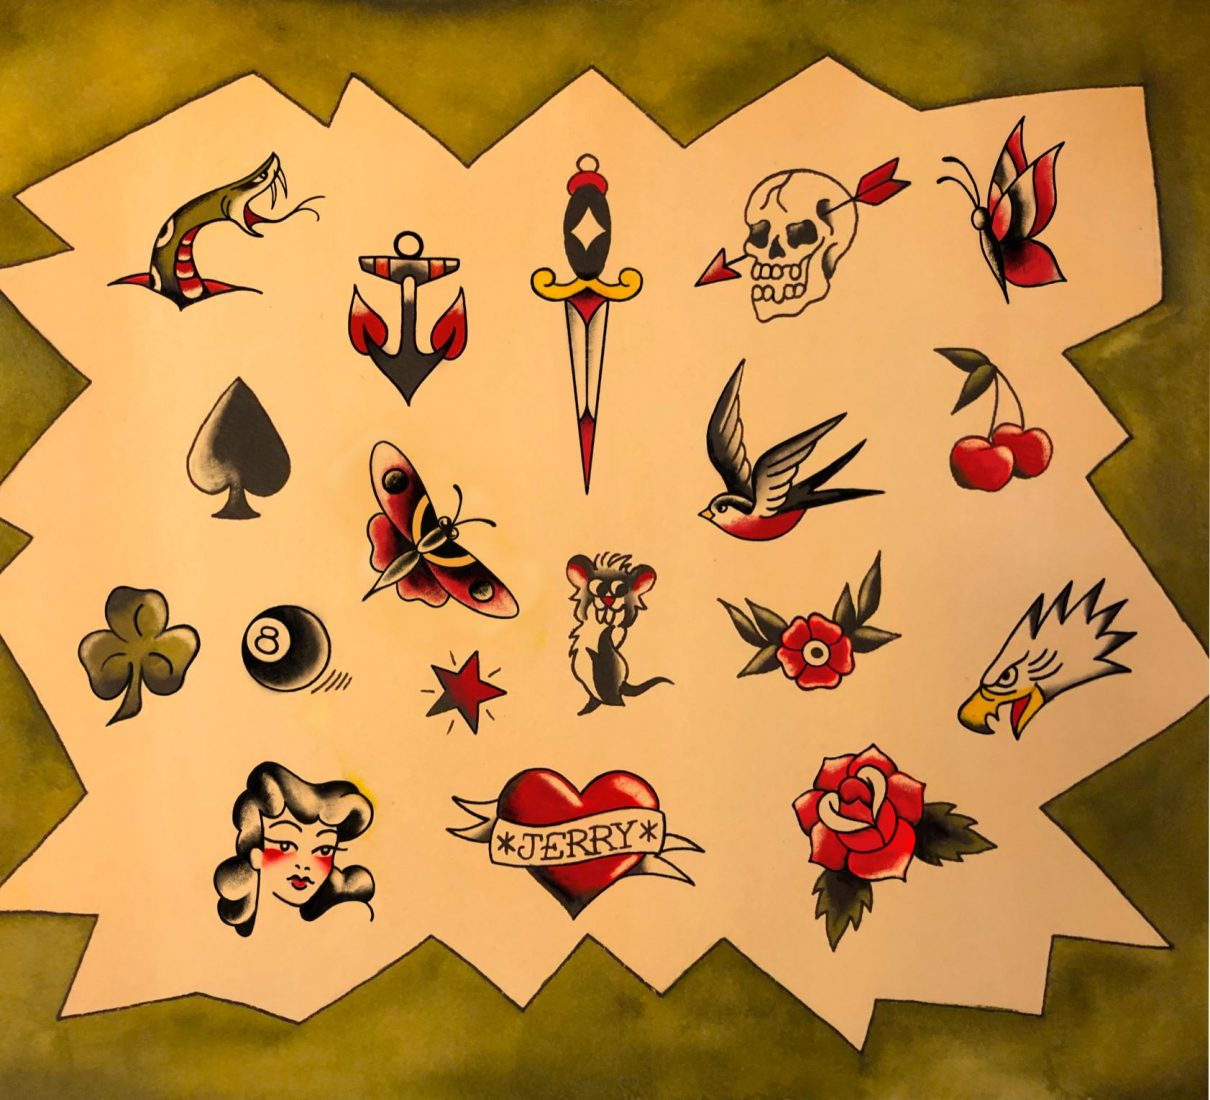 Get A Sailor Jerry Tattoo At Daredevil Tattoo Museum On January 14 Downtown Magazine